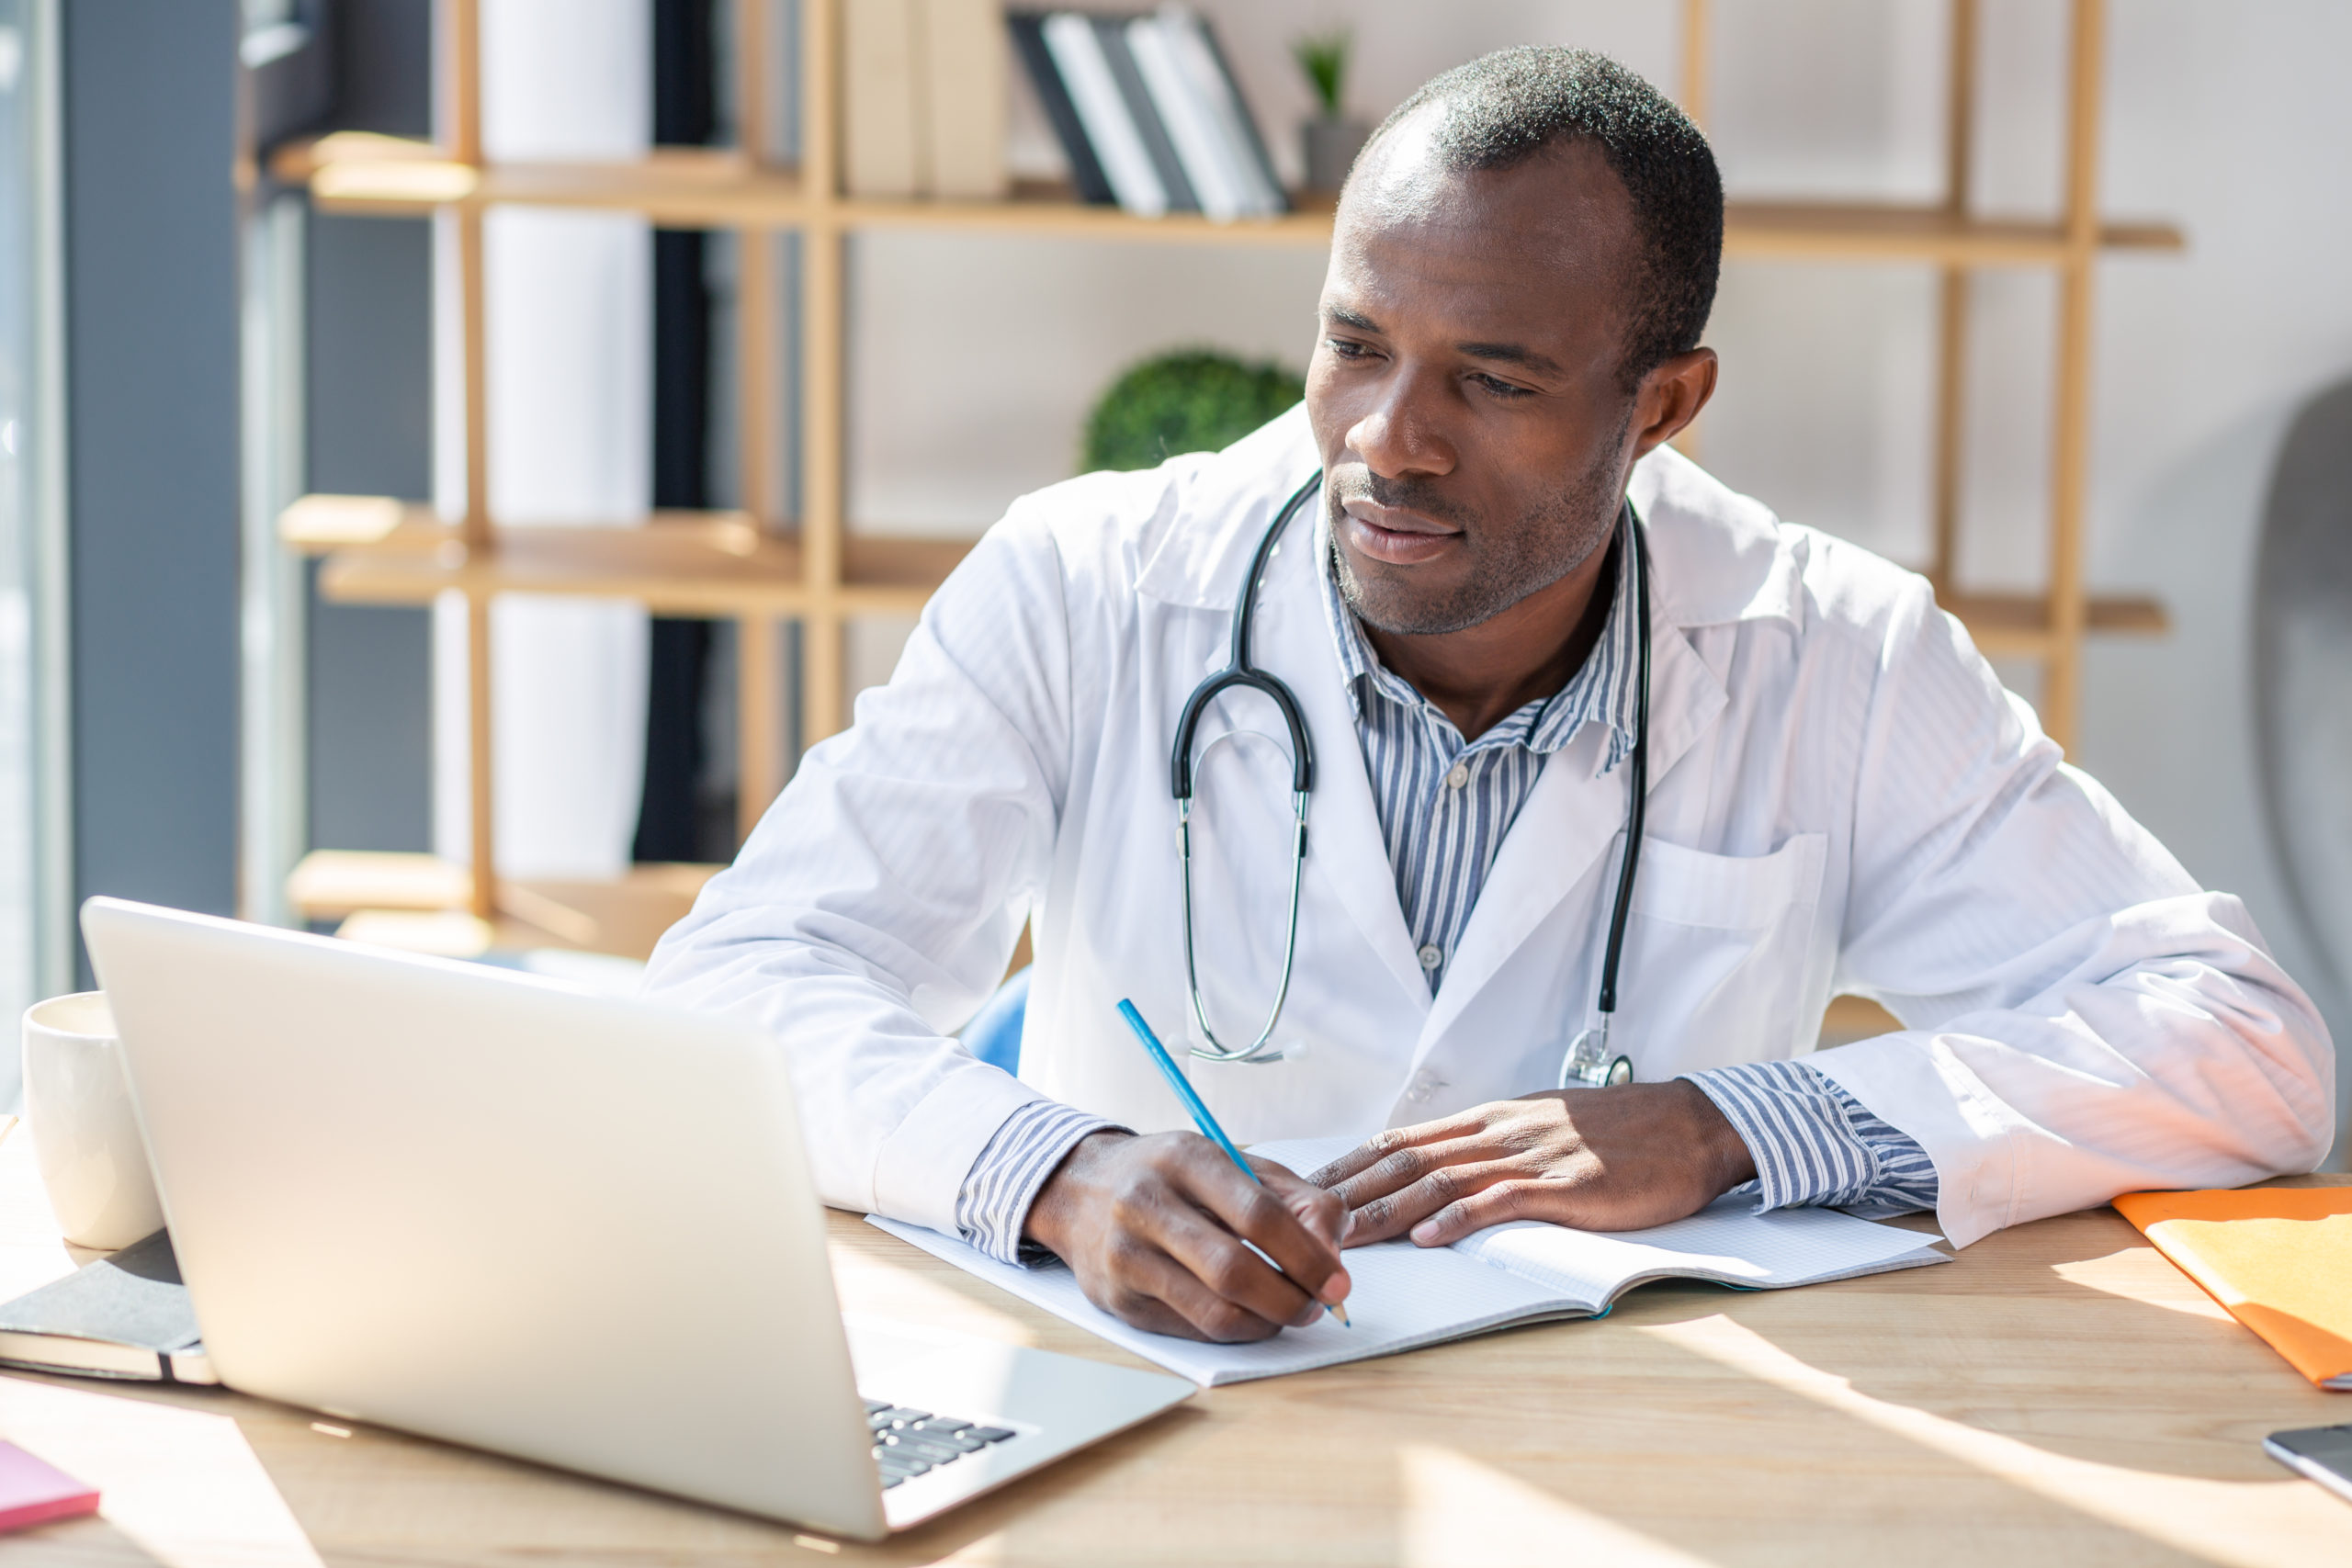 Healthcare provider with PhD writes about research